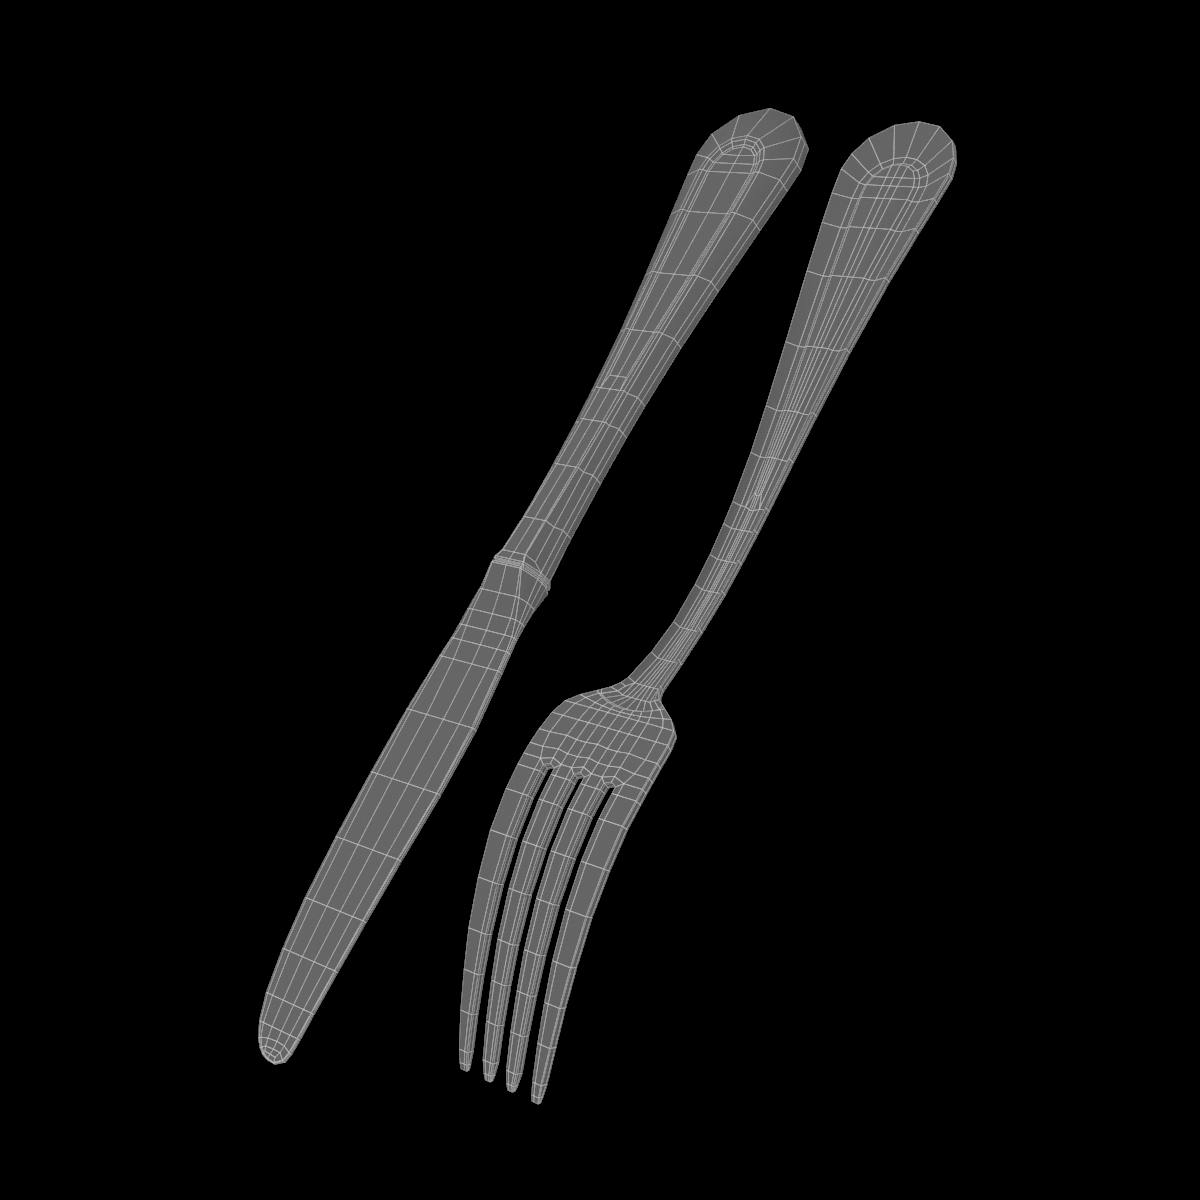 table dinner knife and fork classic cutlery 3d model 3ds max fbx c4d ma mb obj 284042